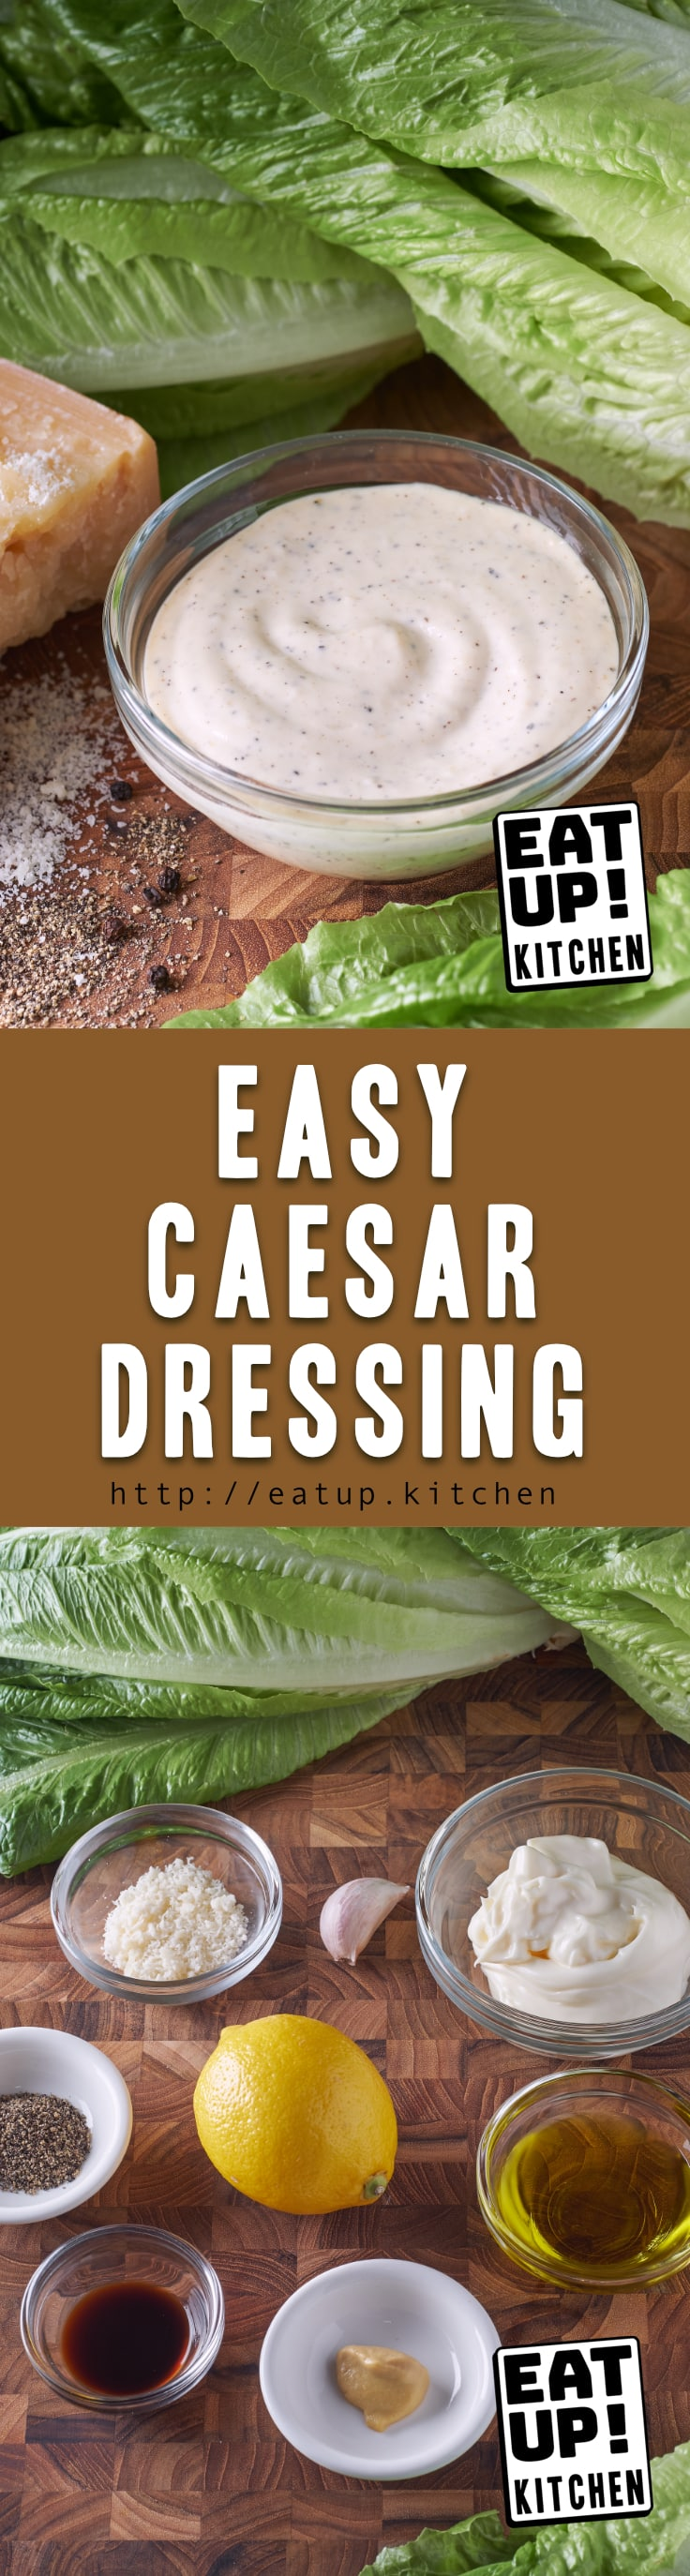 Using store bought mayonnaise makes for a super Easy Caesar Dressing. Plus you don't have to worry about anchovies and raw egg yolks. This comes together in 5-7 minutes with stuff you probably already have.